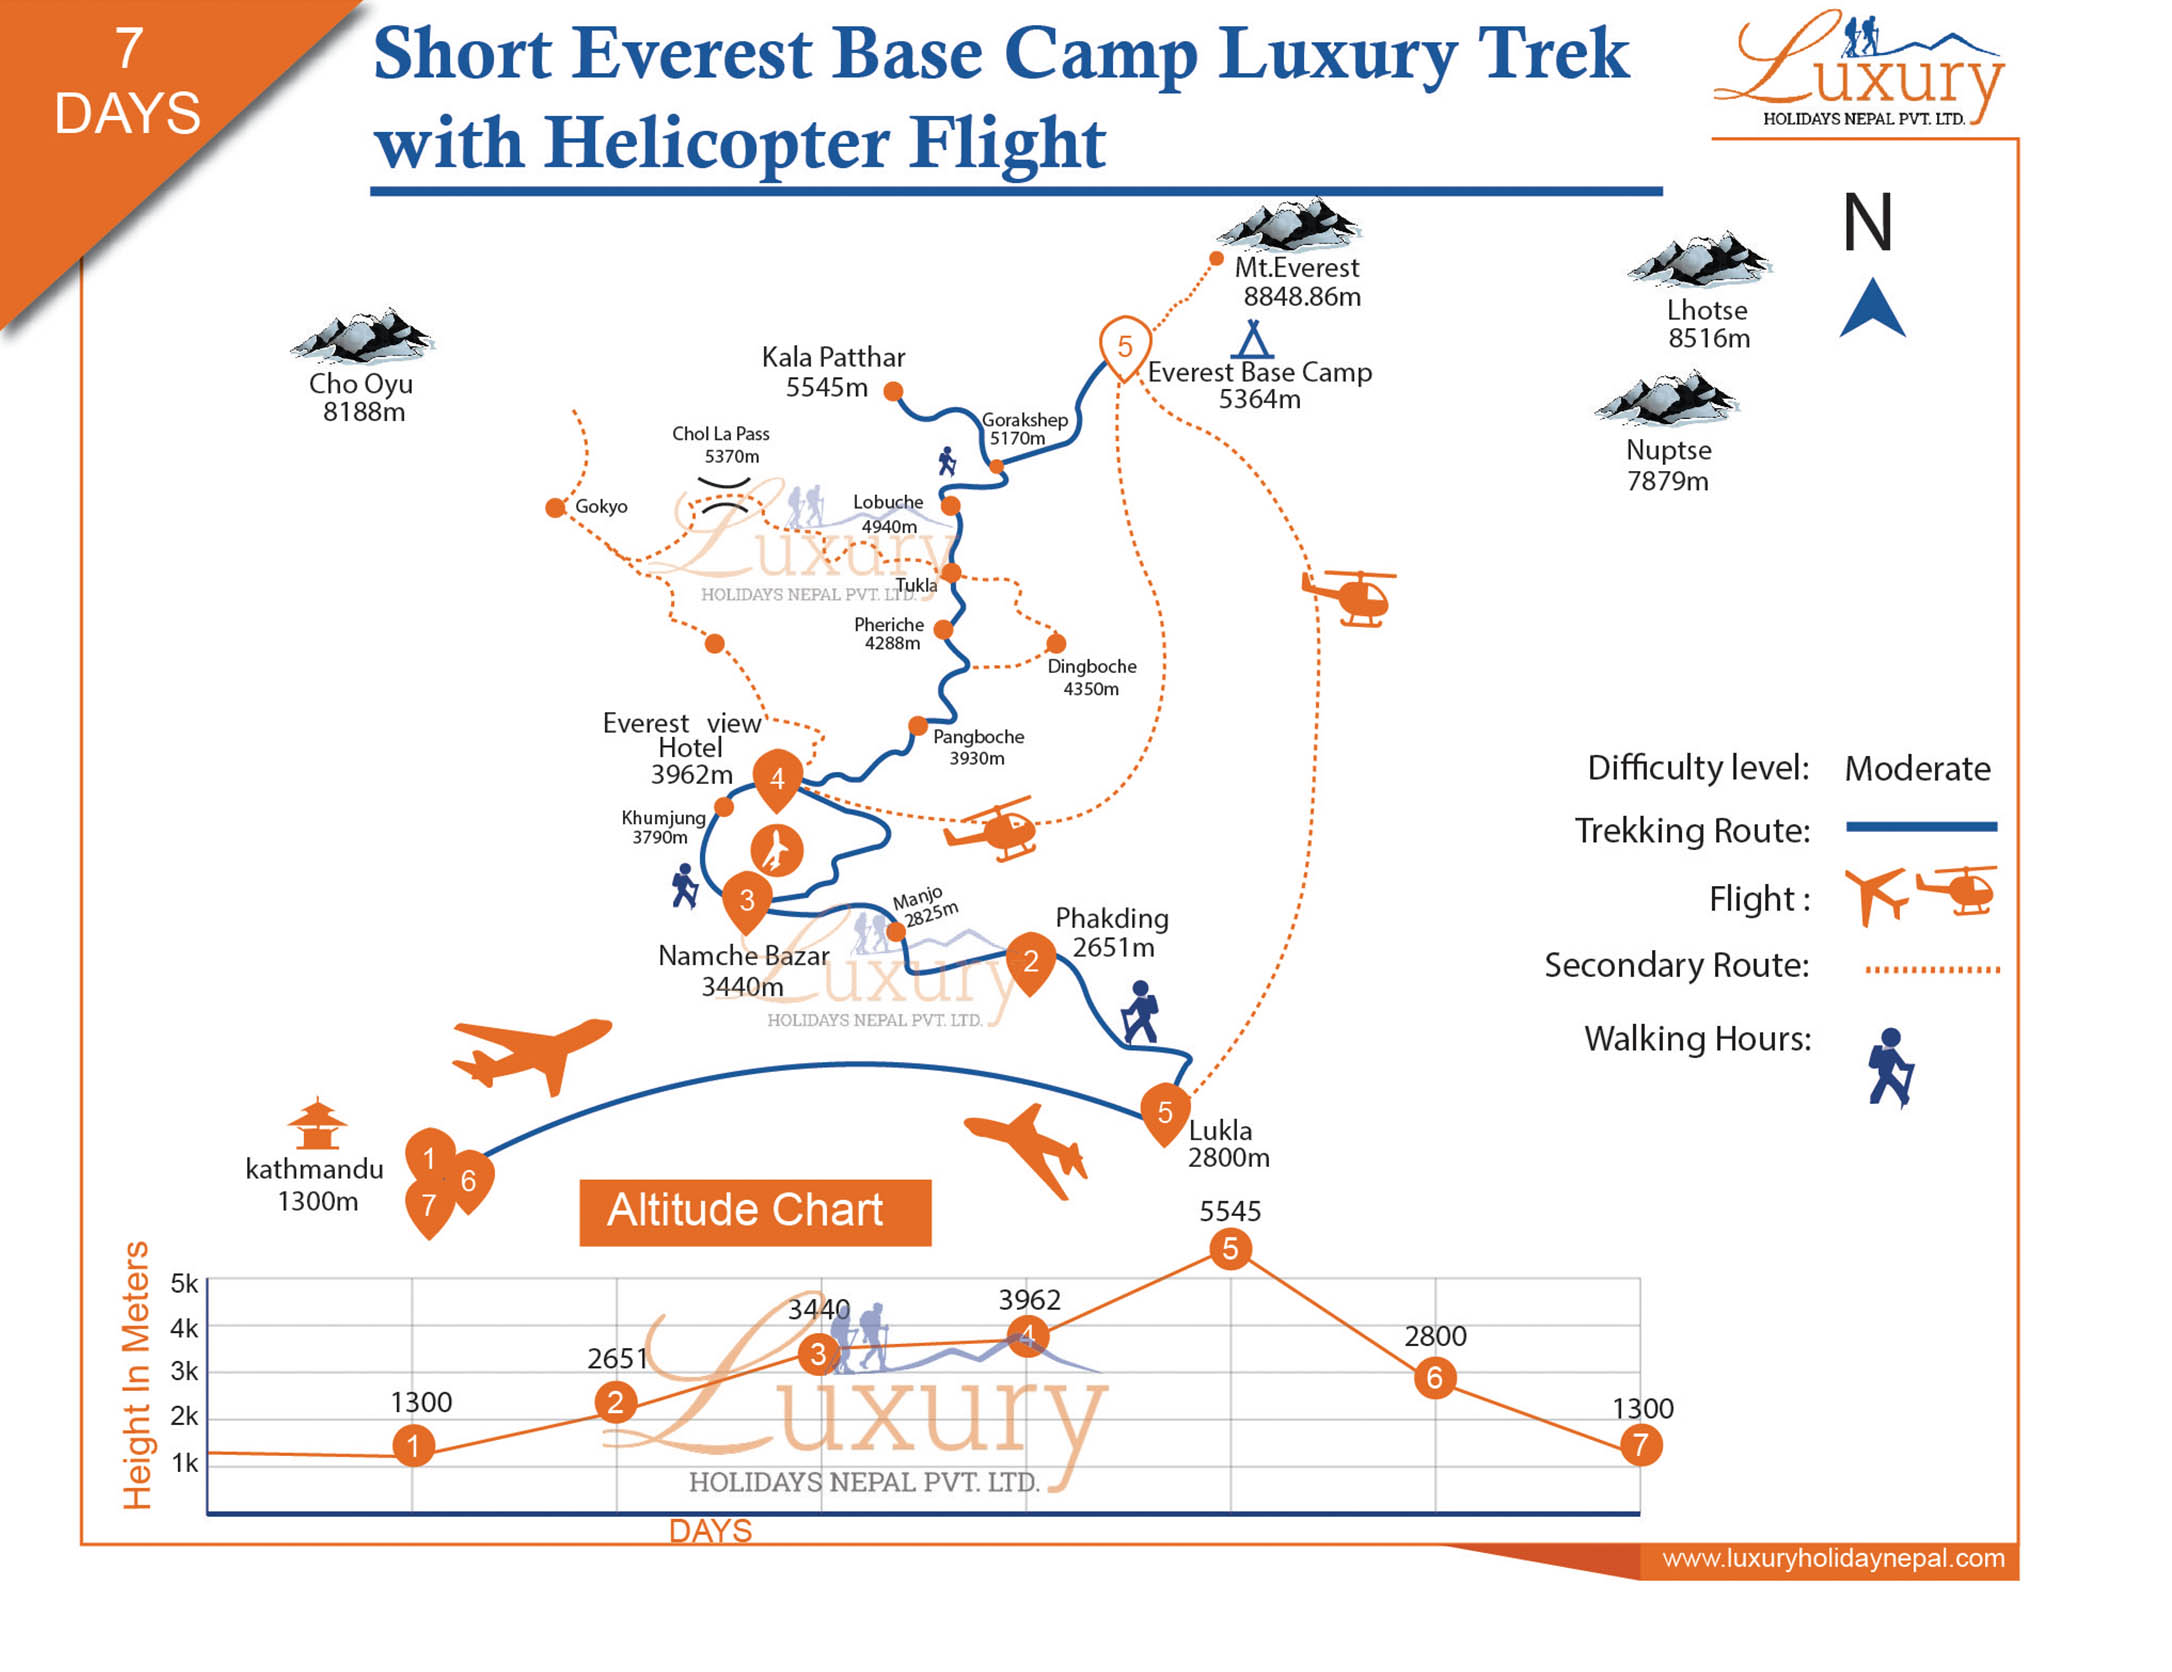 Short Everest Base Camp Luxury Trek with Helicopter flight Trip Map